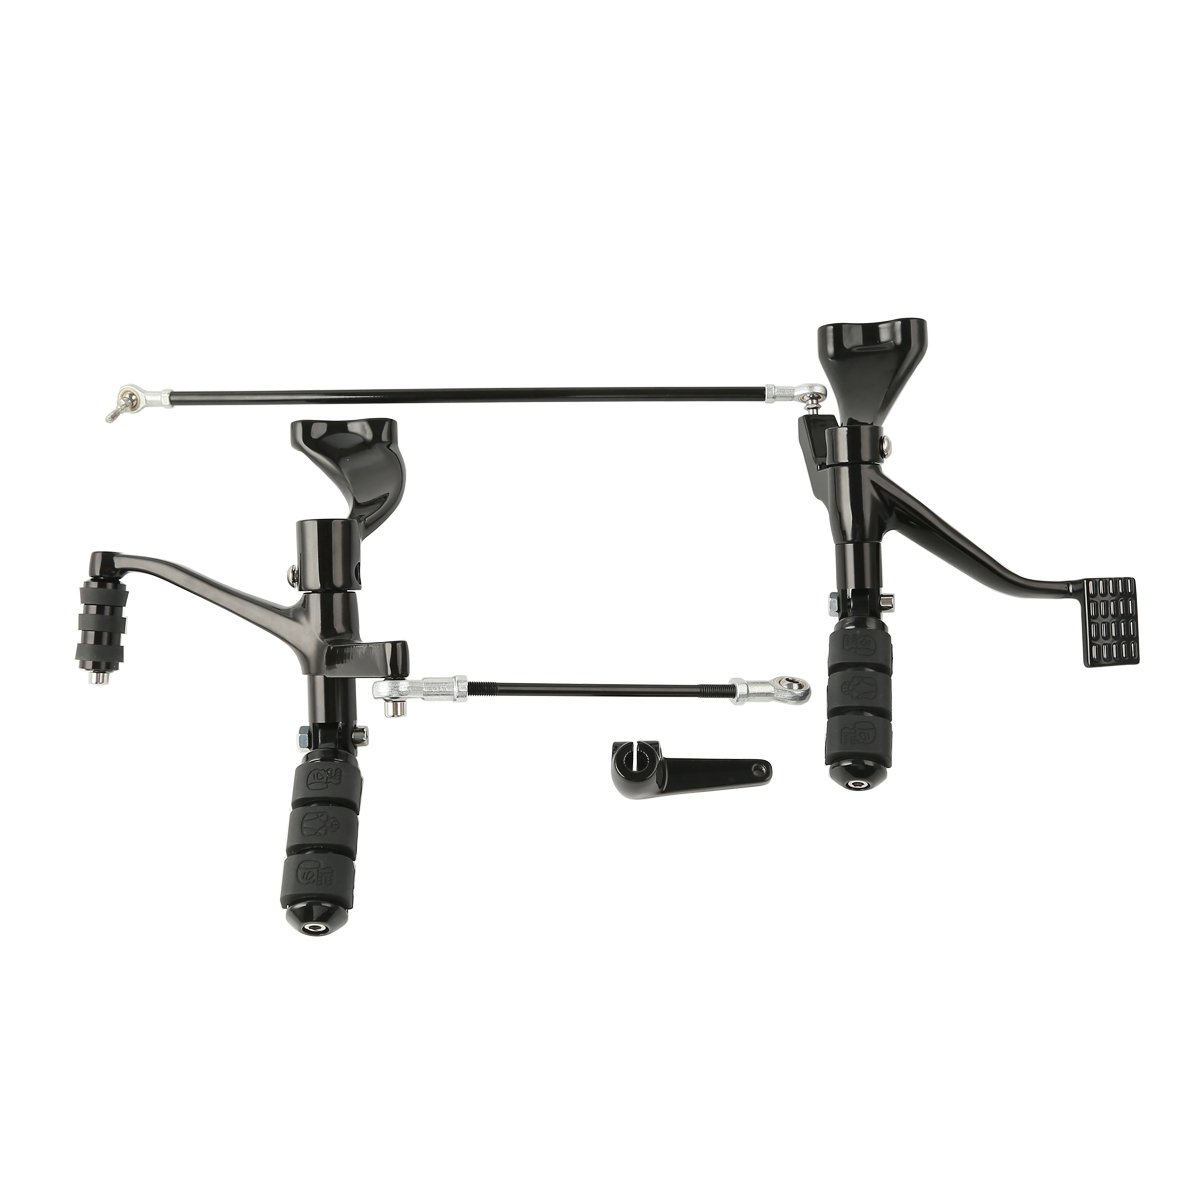 XMT-MTOT Black Forward Controls Kit Pegs Levers Linkages For Harley Sportster 2014 2015 2016 2017 2018